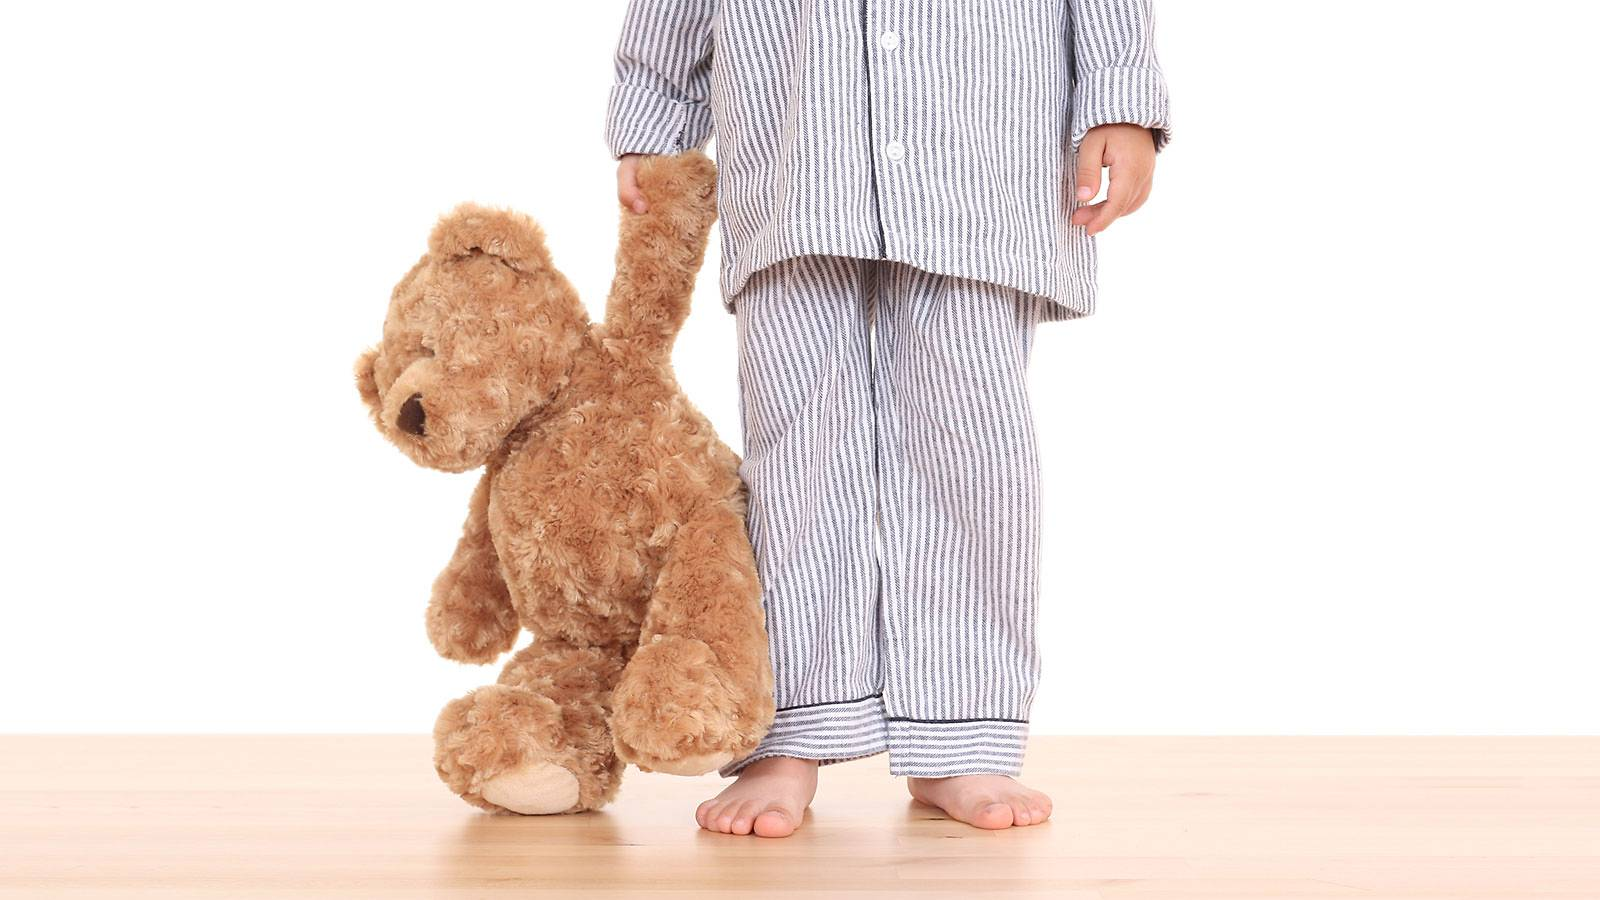 Tots-EXPERT-ADVICE-Why-is-my-child-talking-and-walking-in-his-sleep-MAIN